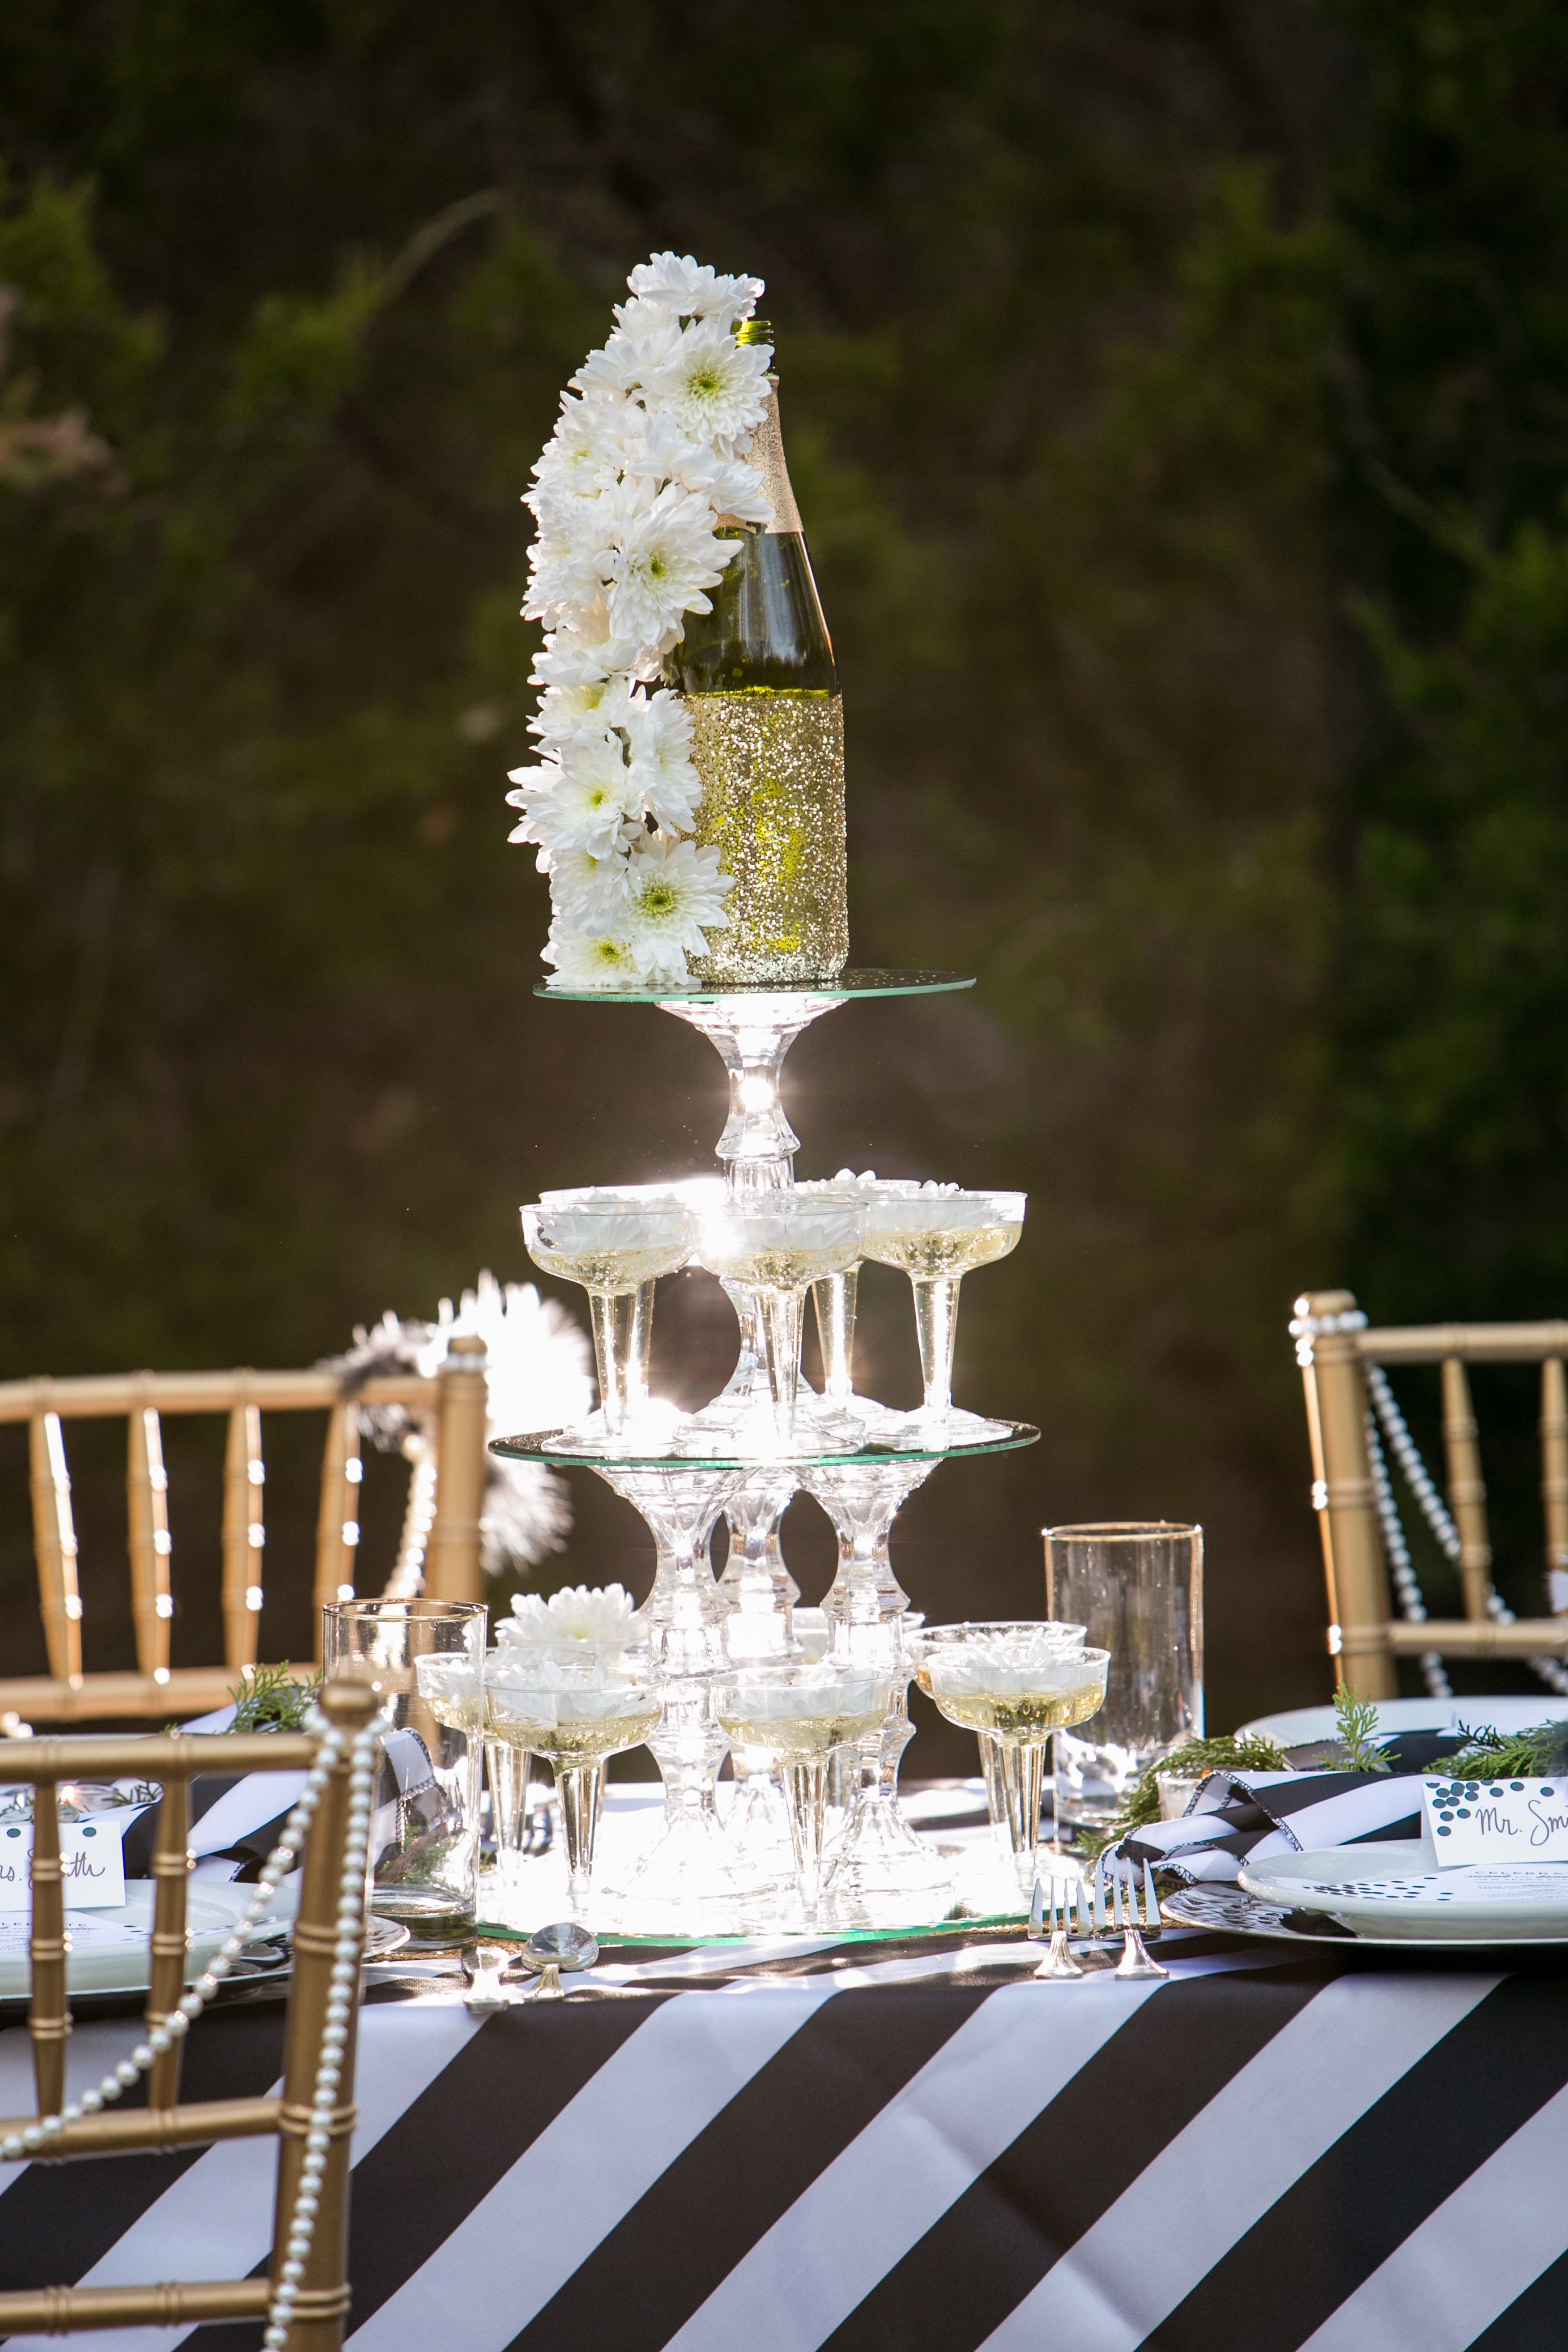 New Years Wedding - Floral Champagne Fountain Centerpiece created by Fete & Frivolity Events